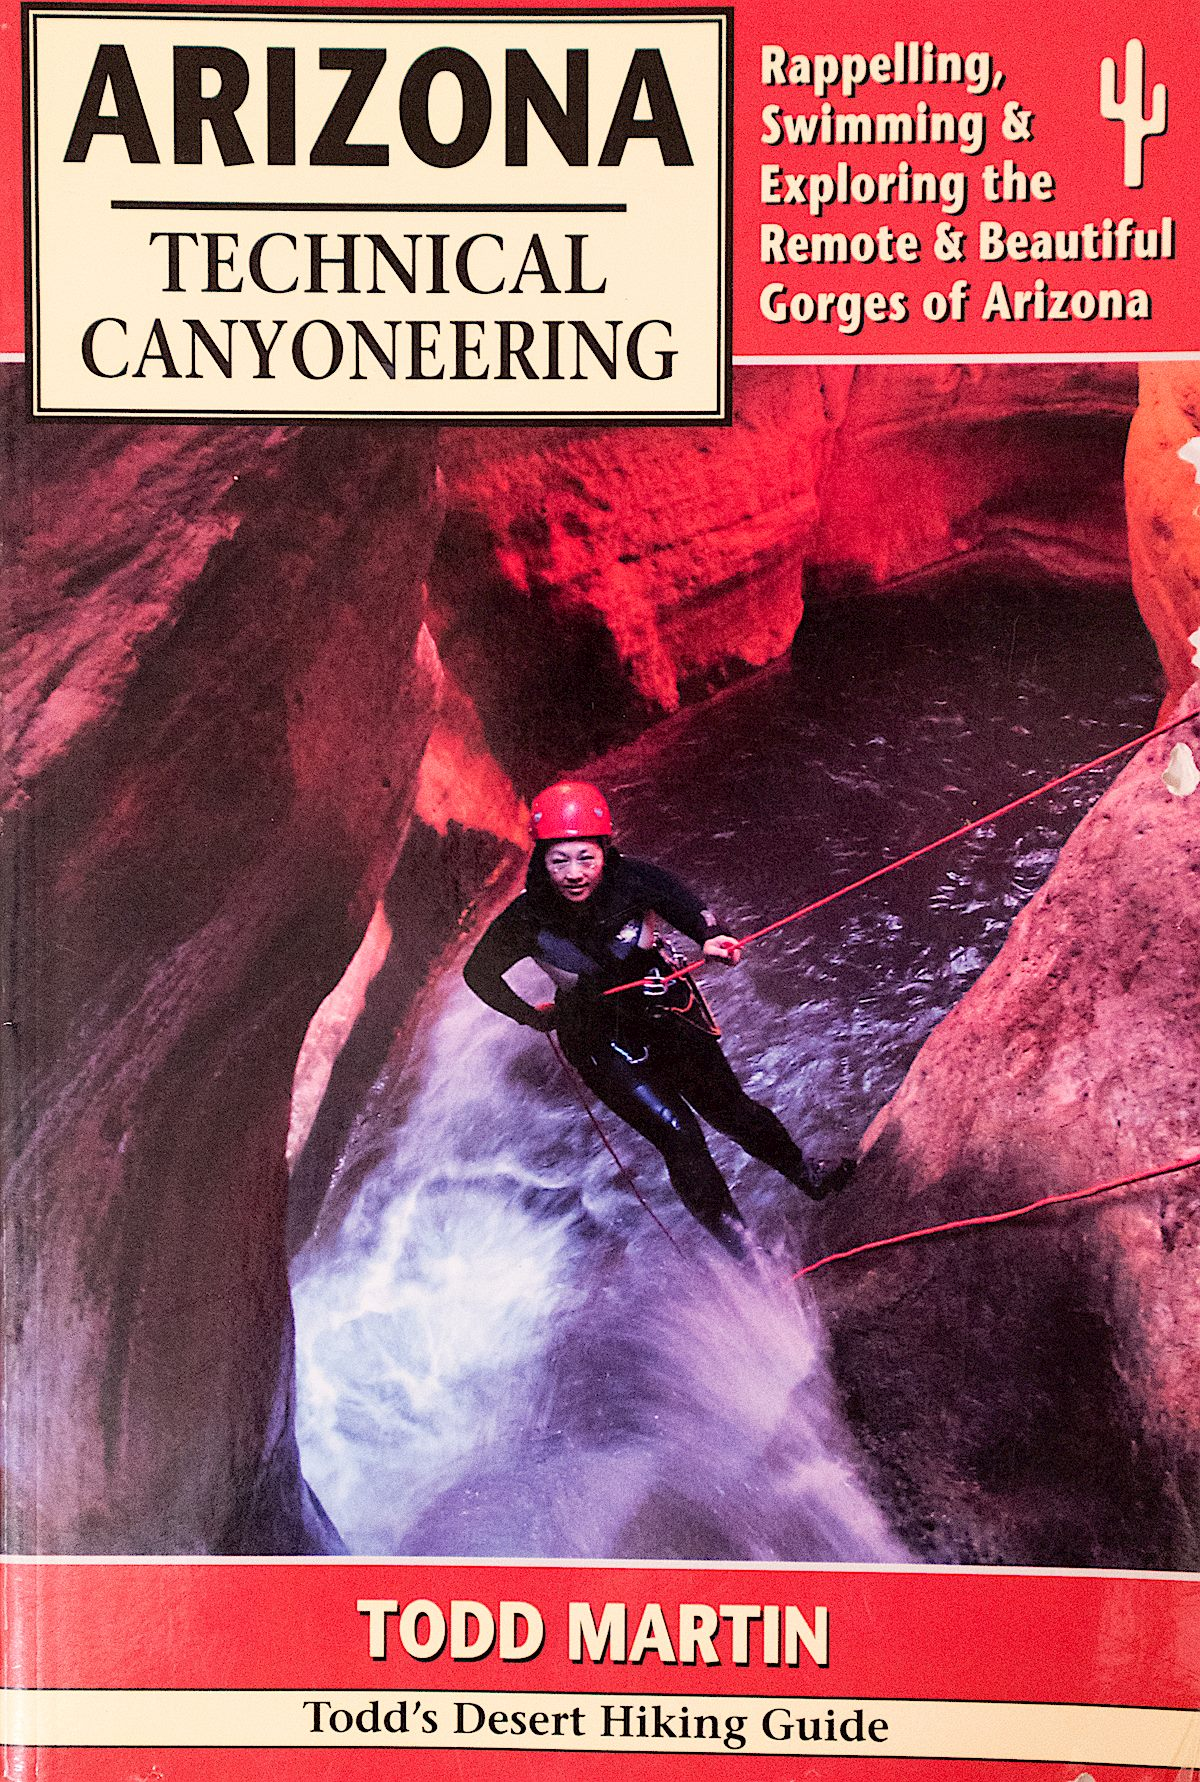 Arizona Technical Canyoneering. First Edition 2007. December 2016.